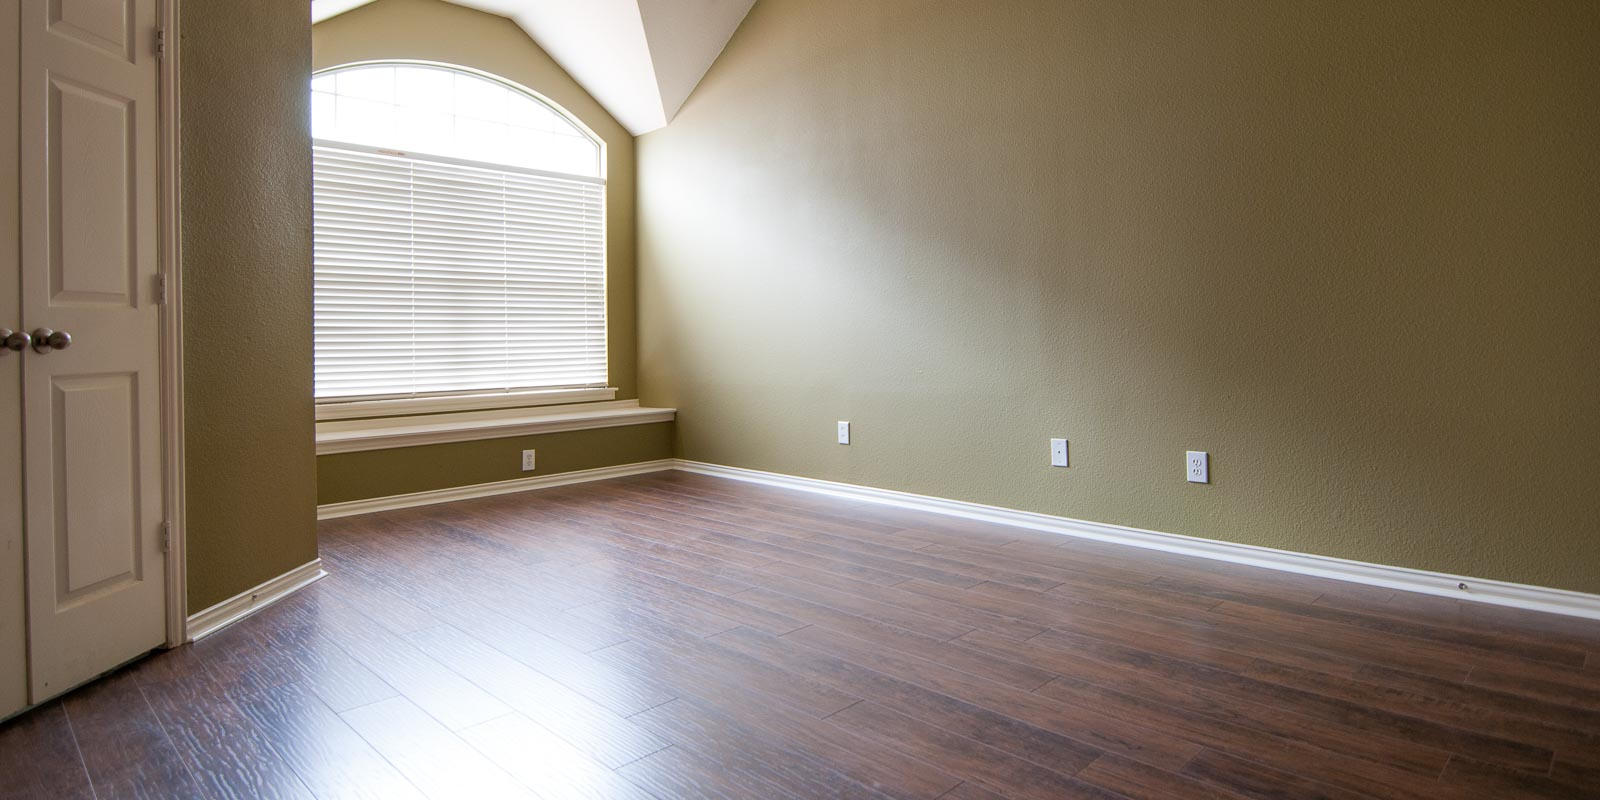 Master bedroom update ladies and gents we have a floor - How to choose carpet for bedrooms ...